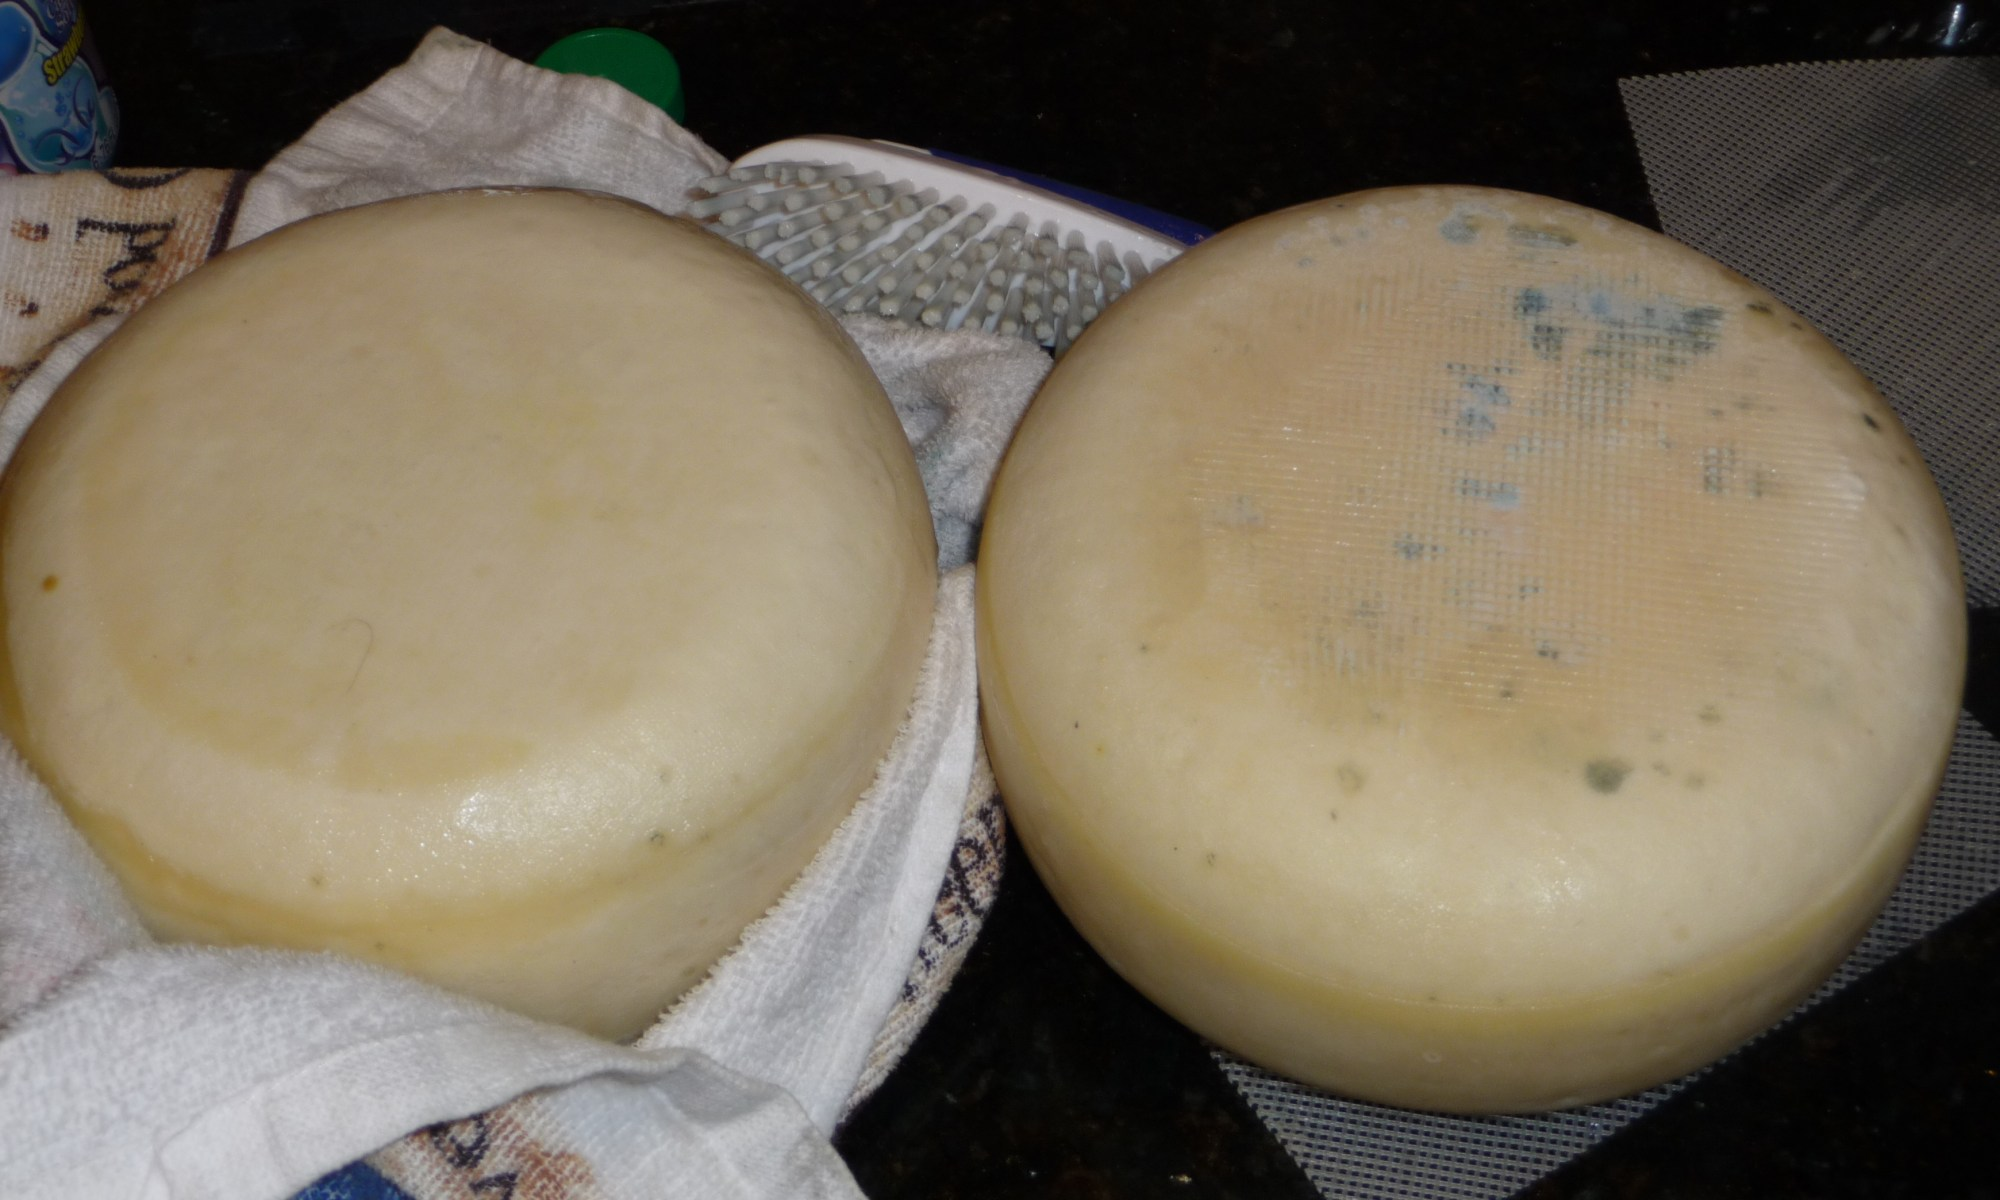 Two 4 pound Gouda's at 30 days age with oiled rinds, one cleaned of mold, second with blue surface mold due to improper aging humidity.